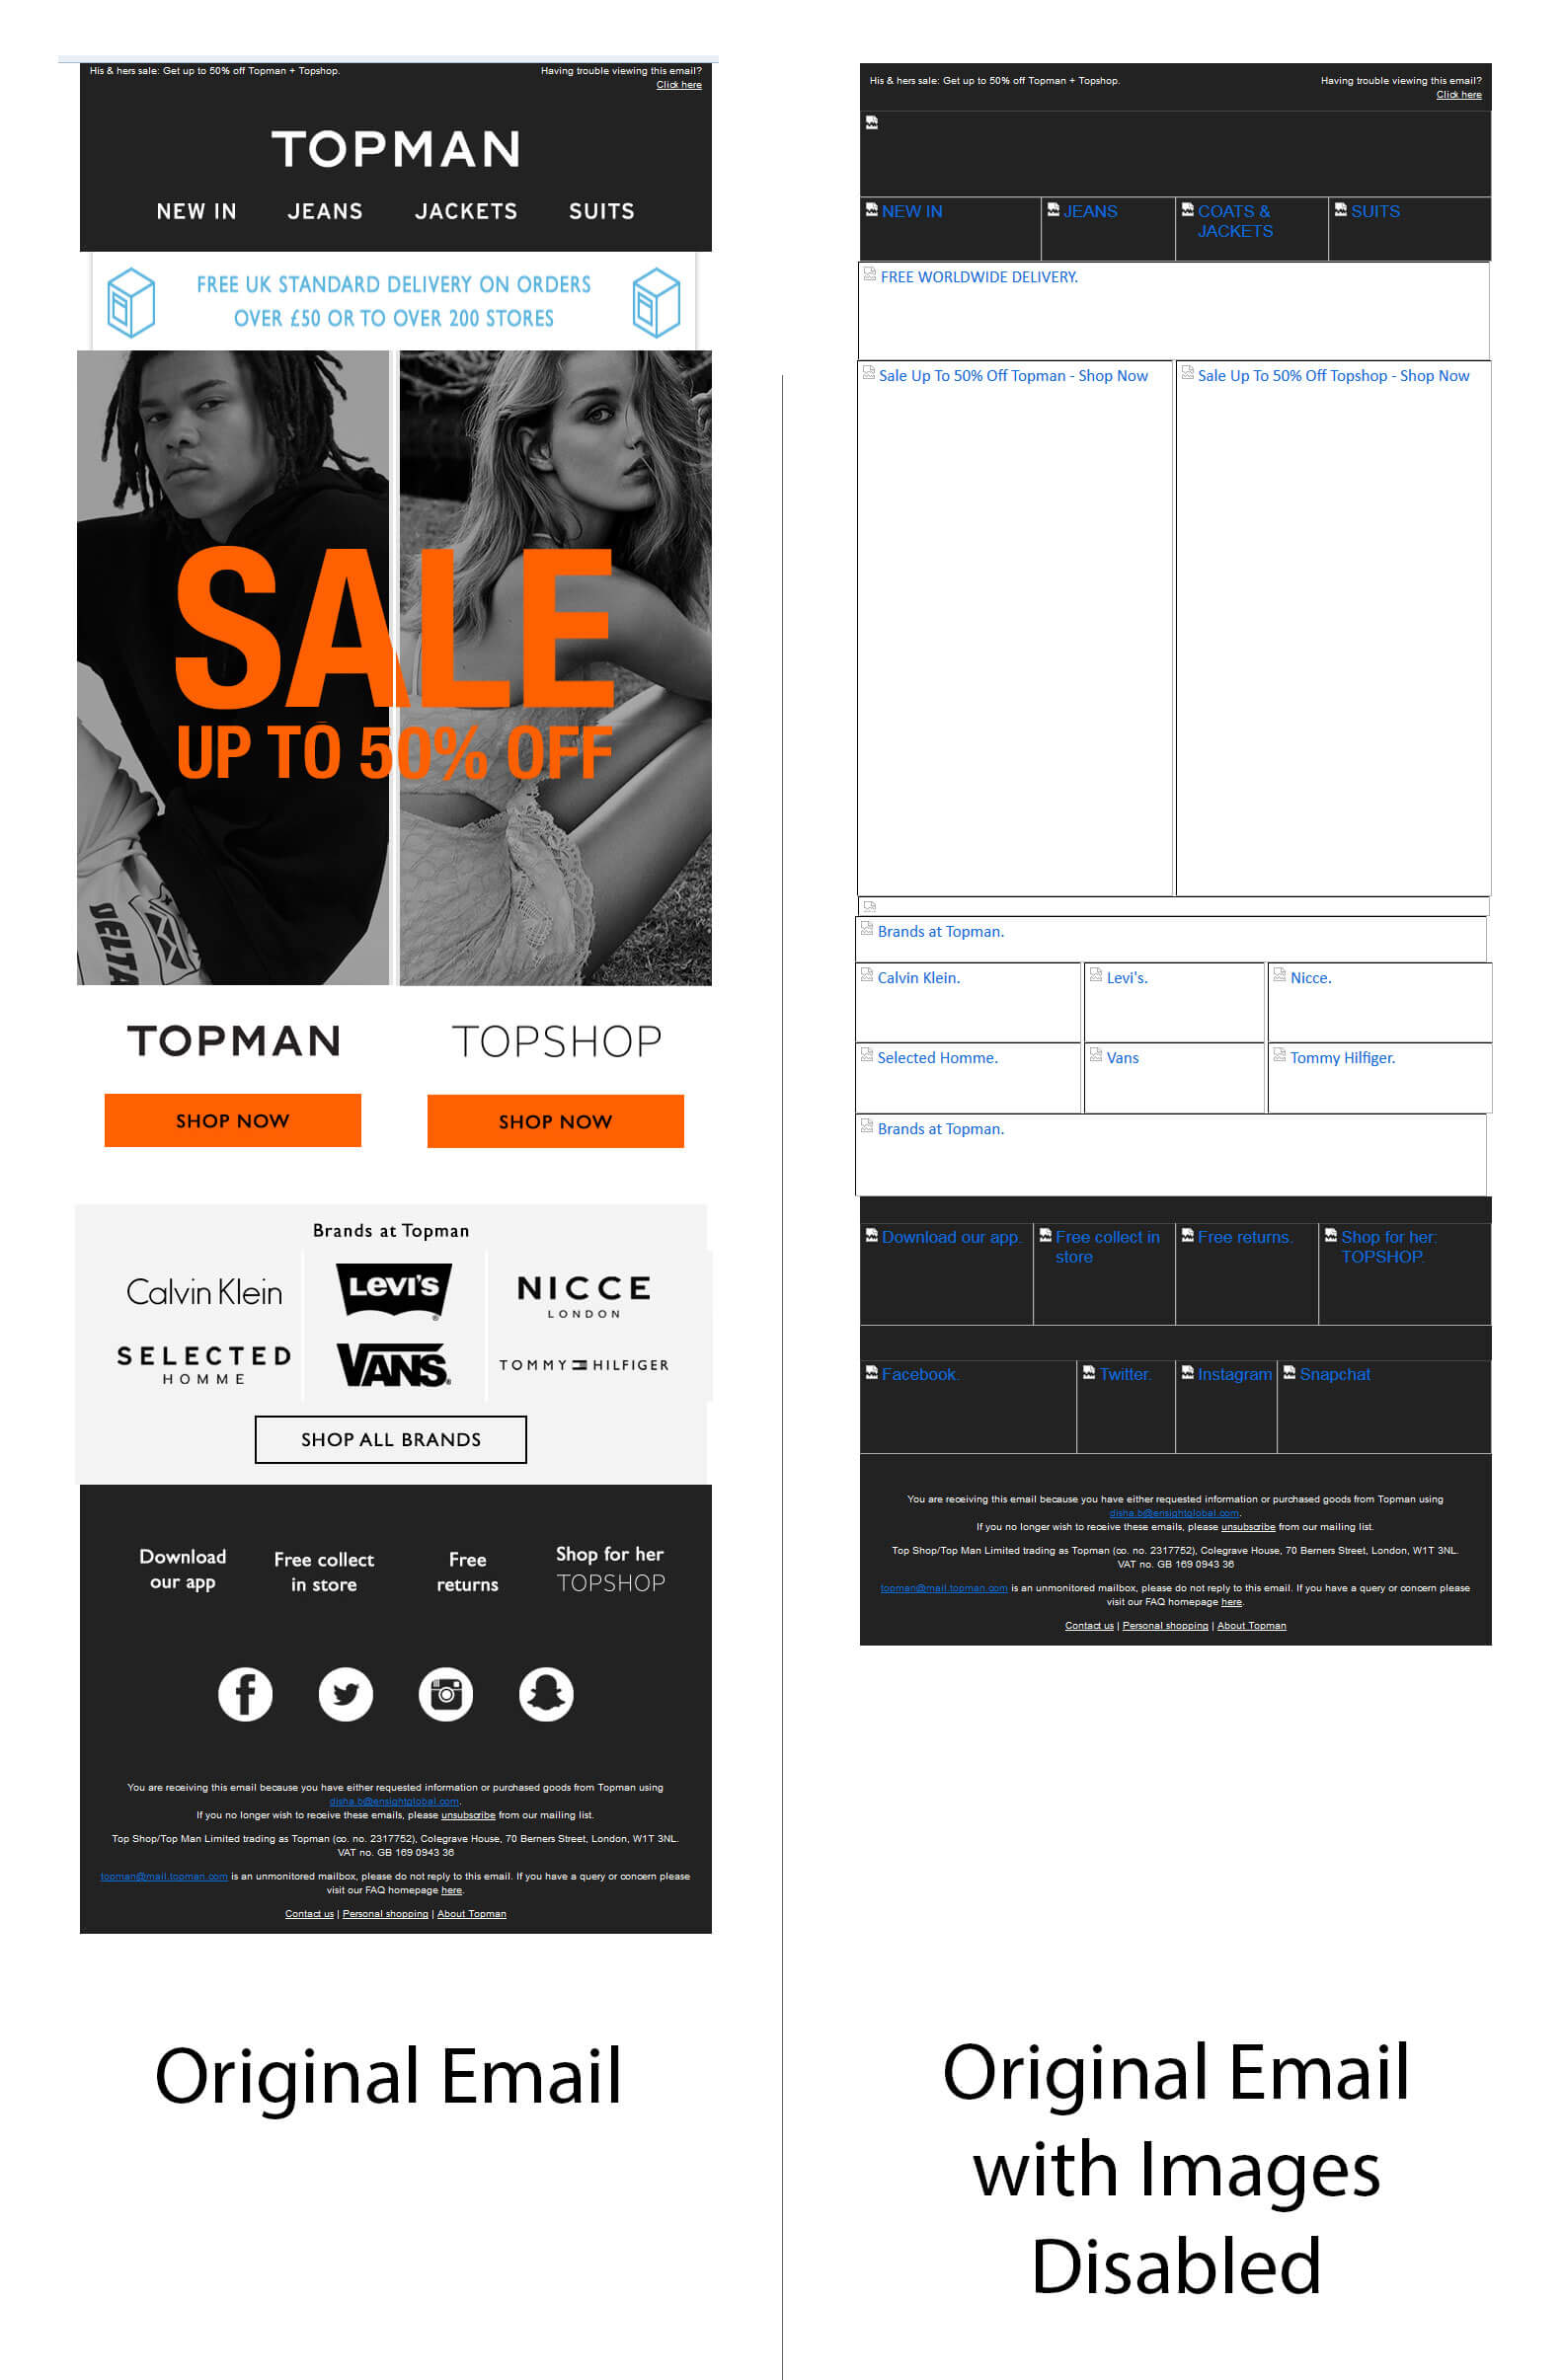 Topman-email